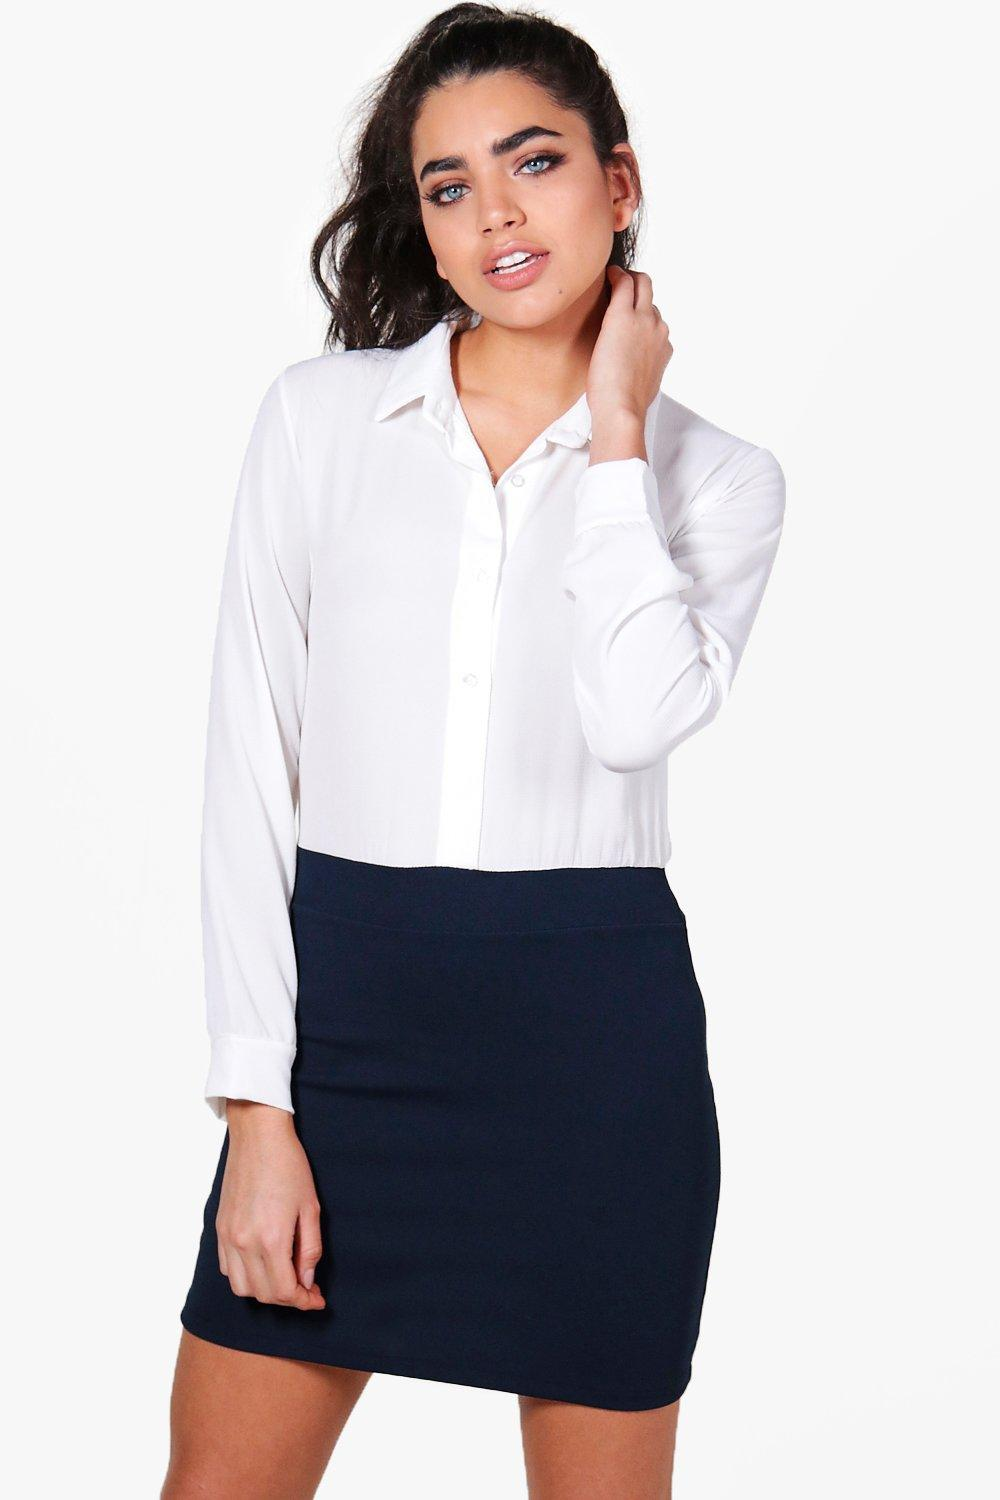 2 in 1 Contrast Shirt Dress - navy Review thumbnail